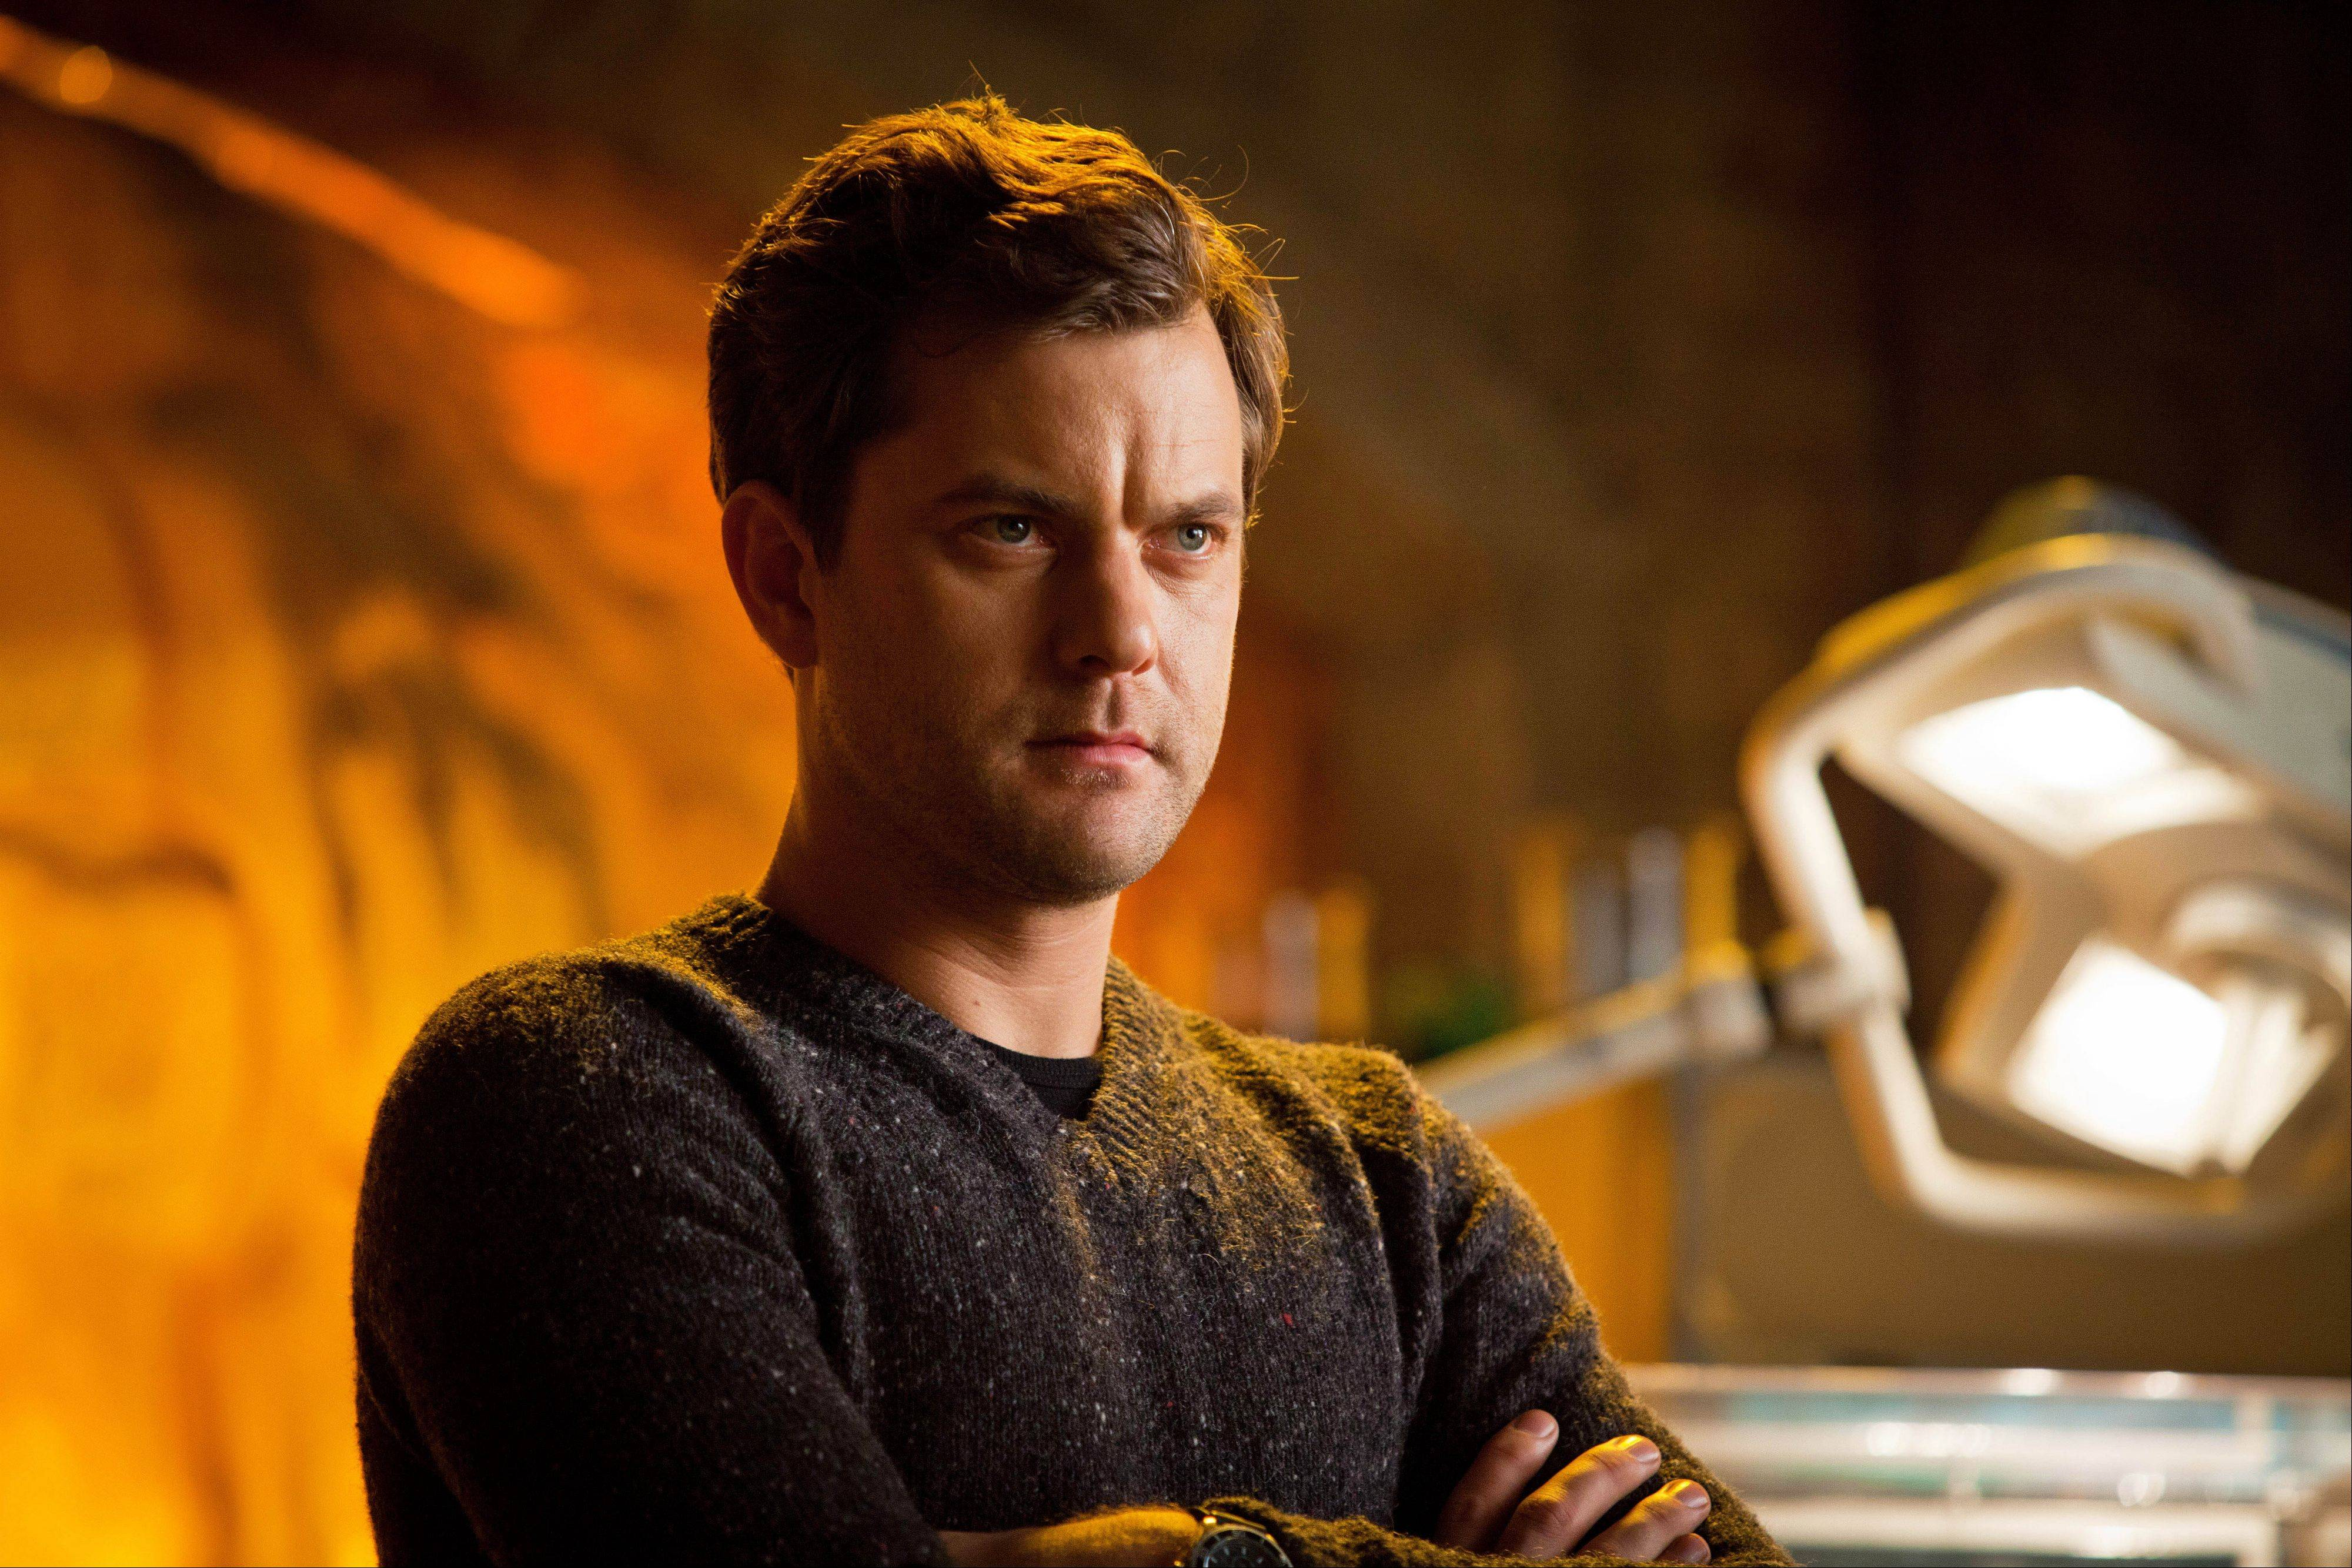 Peter Bishop (Joshua Jackson) is the only main character who didn't have to play multiple versions of himself.